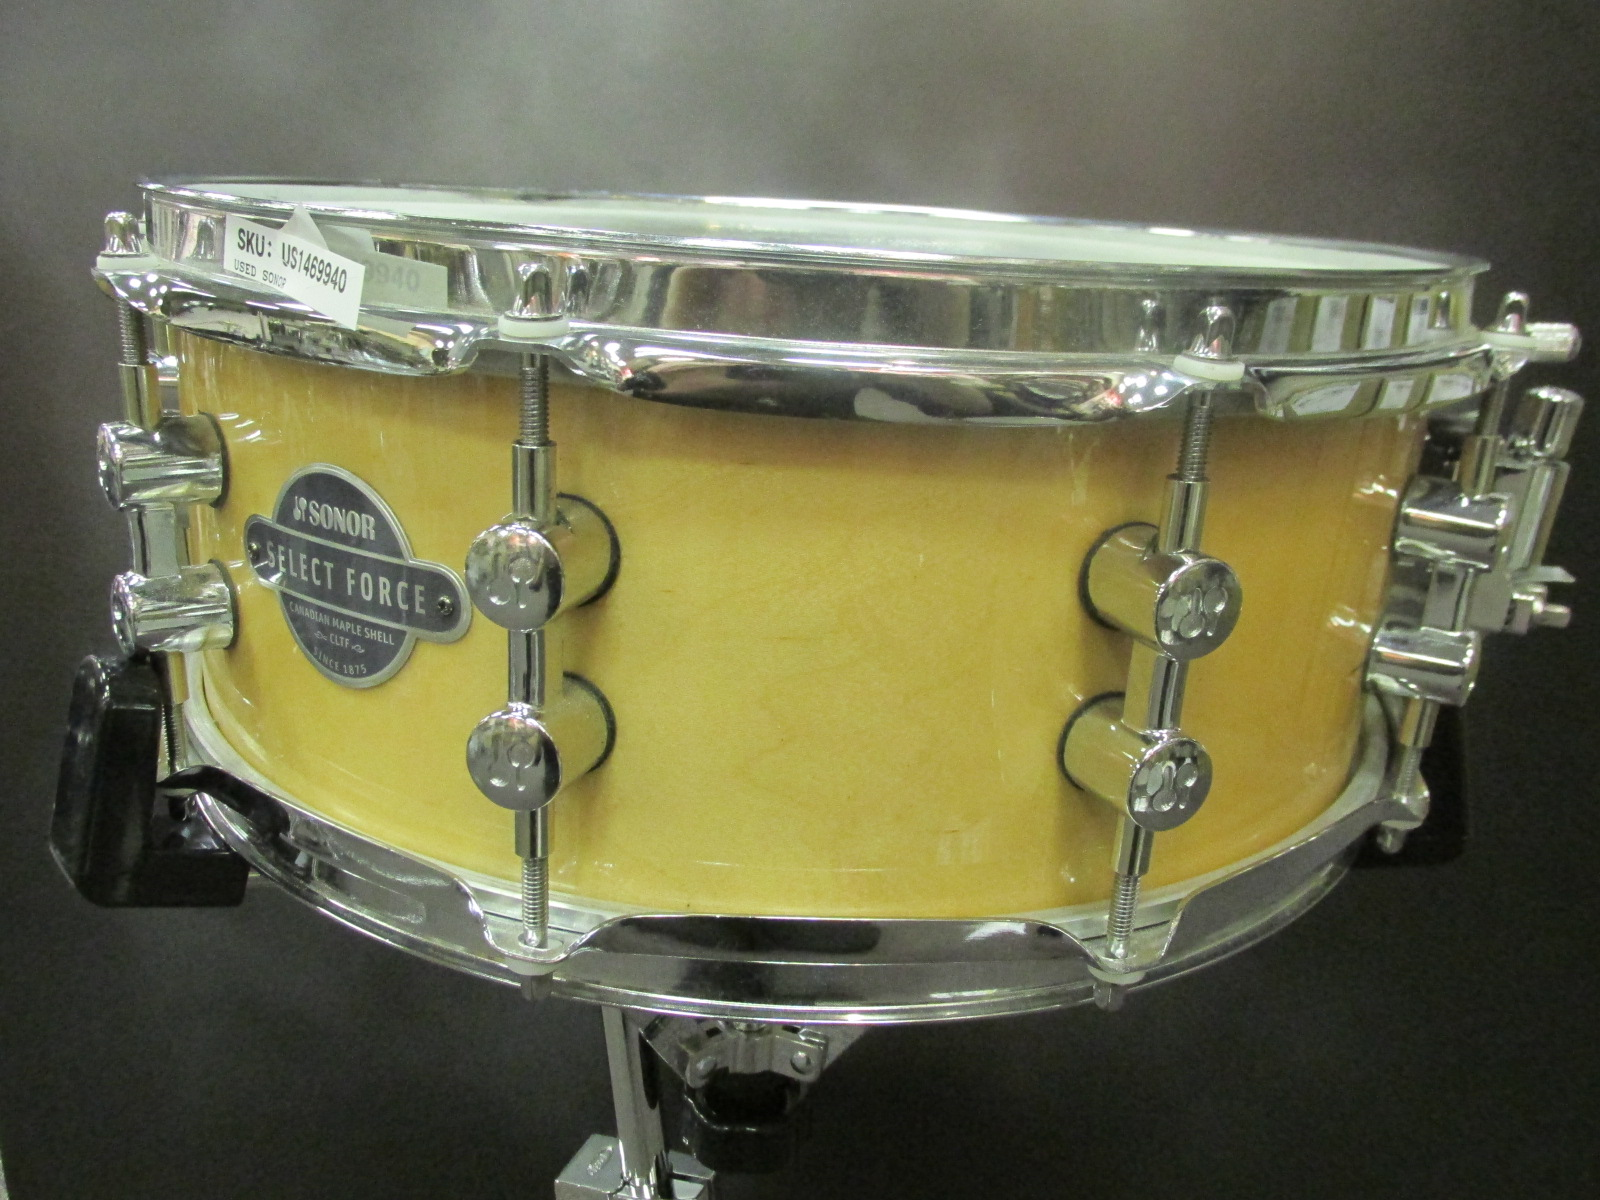 Sonor - Select Force